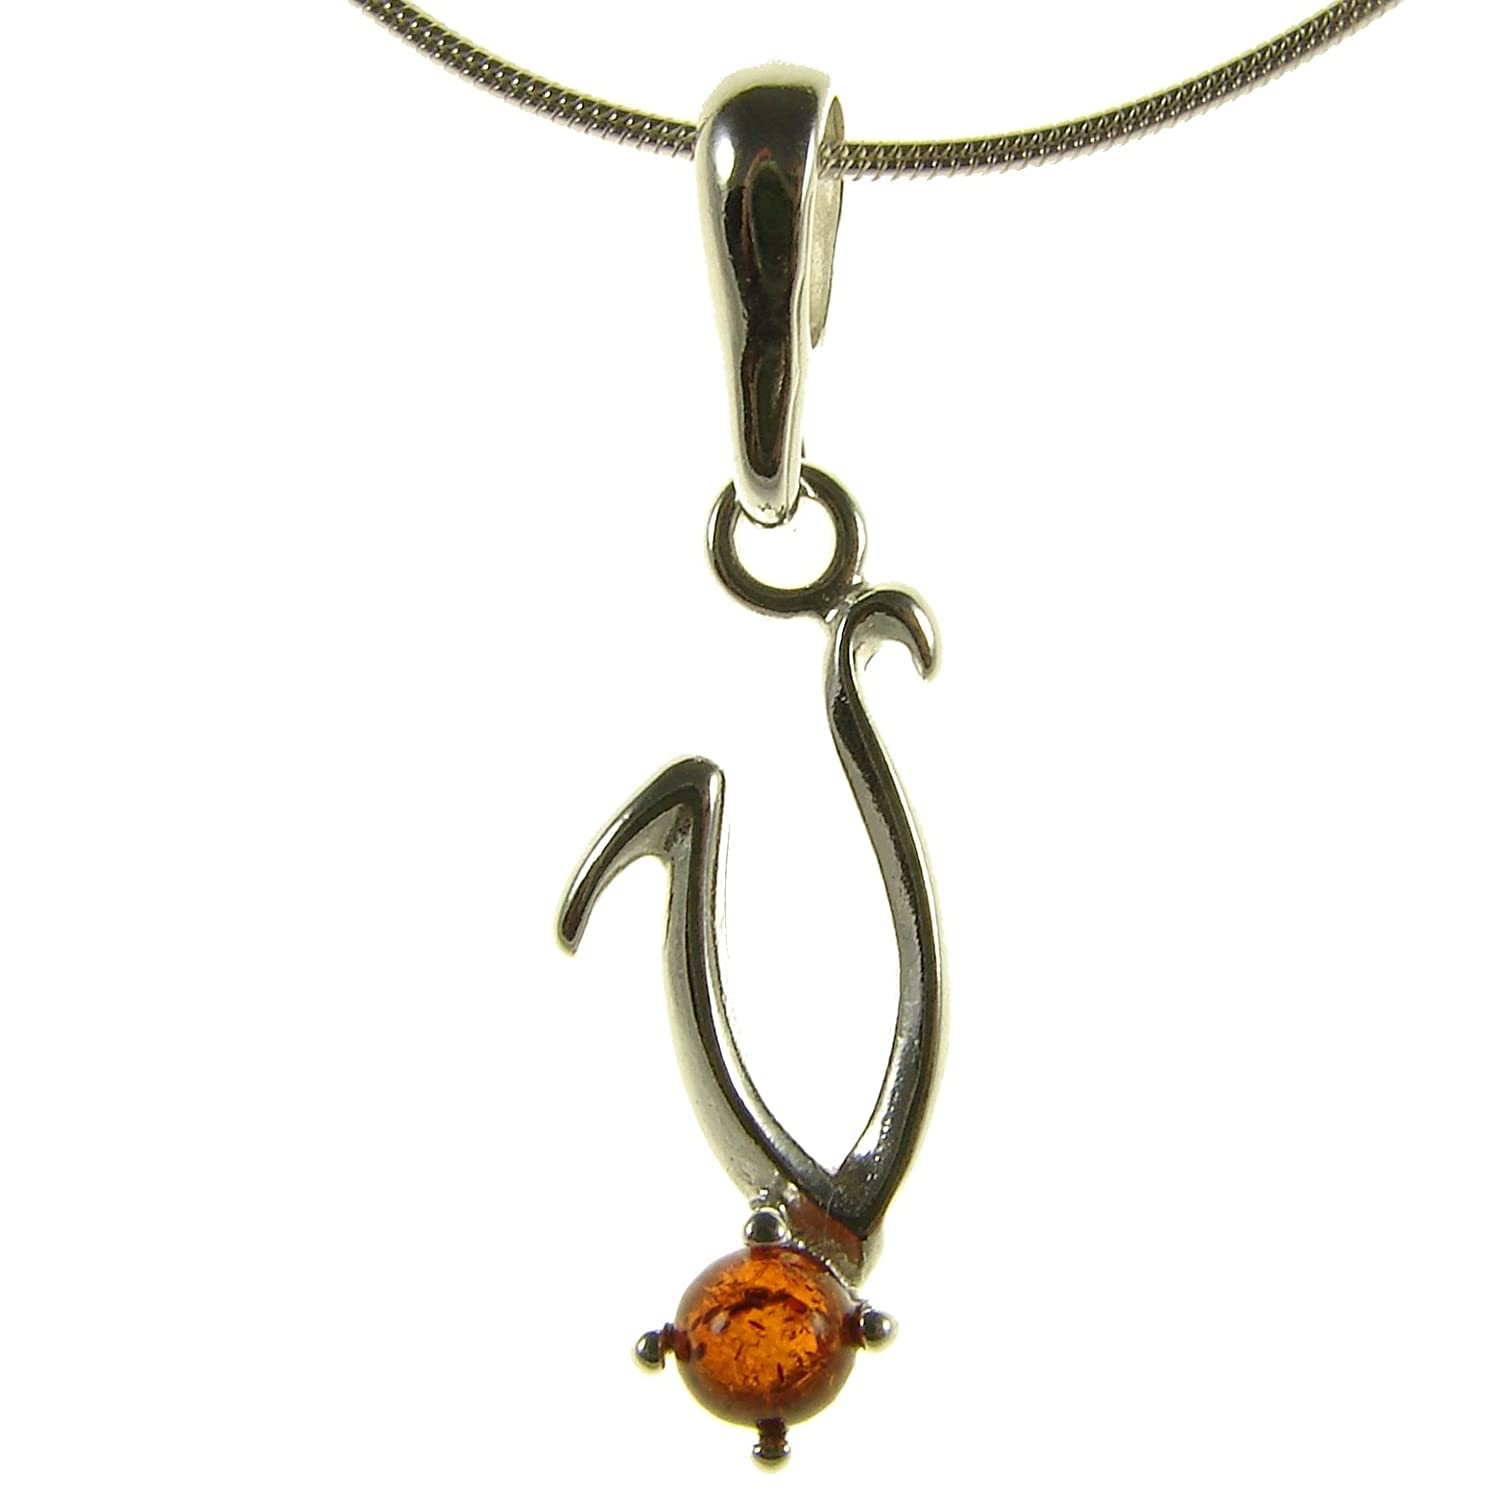 BALTIC AMBER AND STERLING SILVER 925 ALPHABET LETTER V PENDANT NECKLACE 10 12 14 16 18 20 22 24 26 28 30 32 34 36 38 40 1mm ITALIAN SNAKE CHAIN